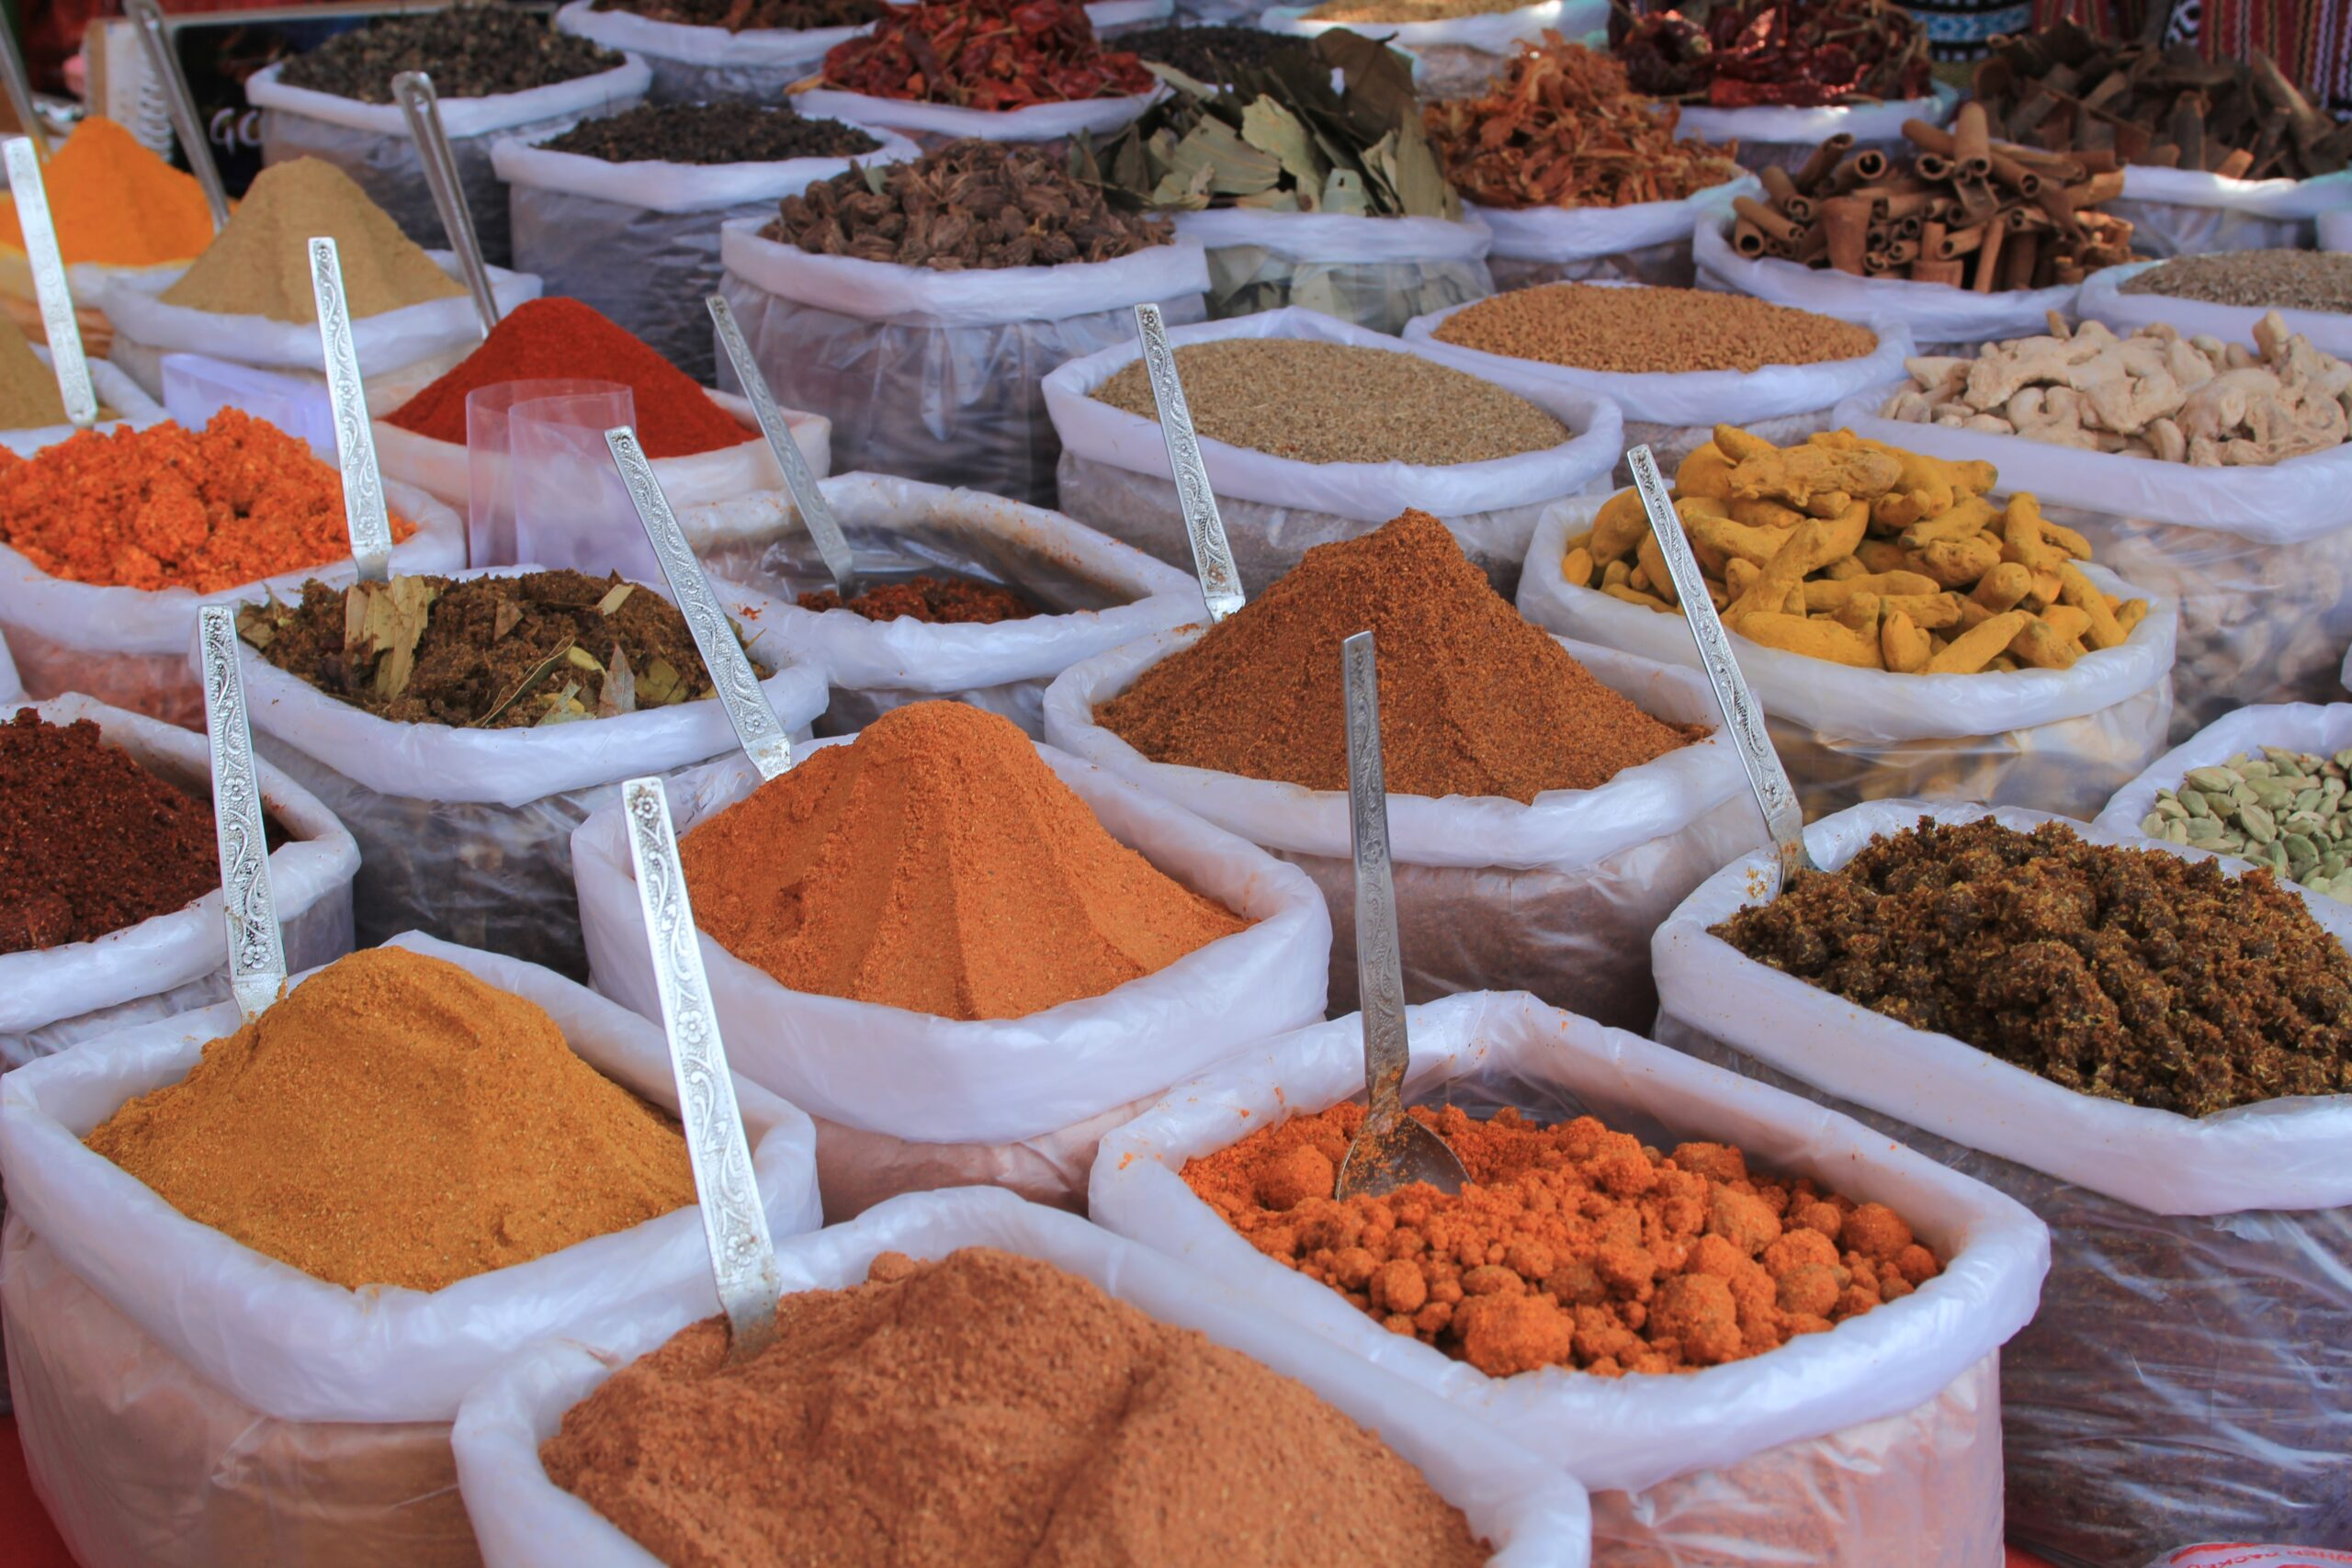 Chilli Temps: China, U.S. Compete in Billion-Dollar Market For Indian Spices